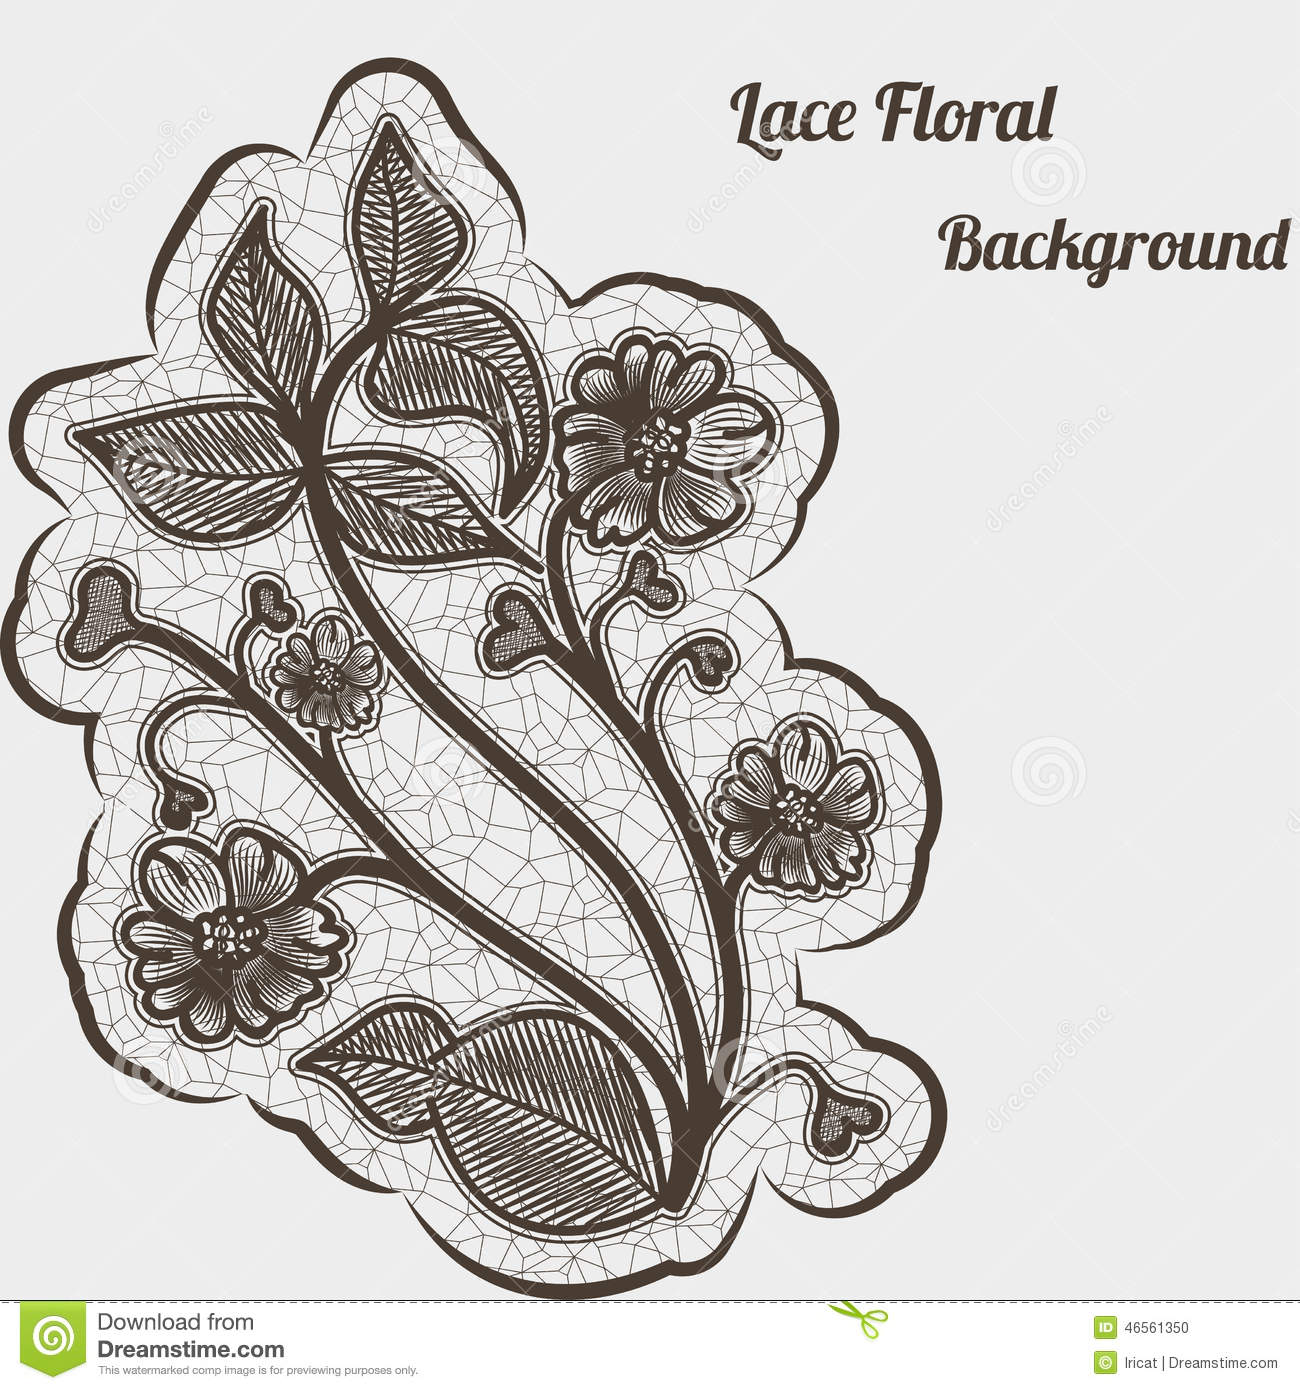 Background With Black Lace Flower For Design Greeting Cards And – Greeting Cards and Invitations